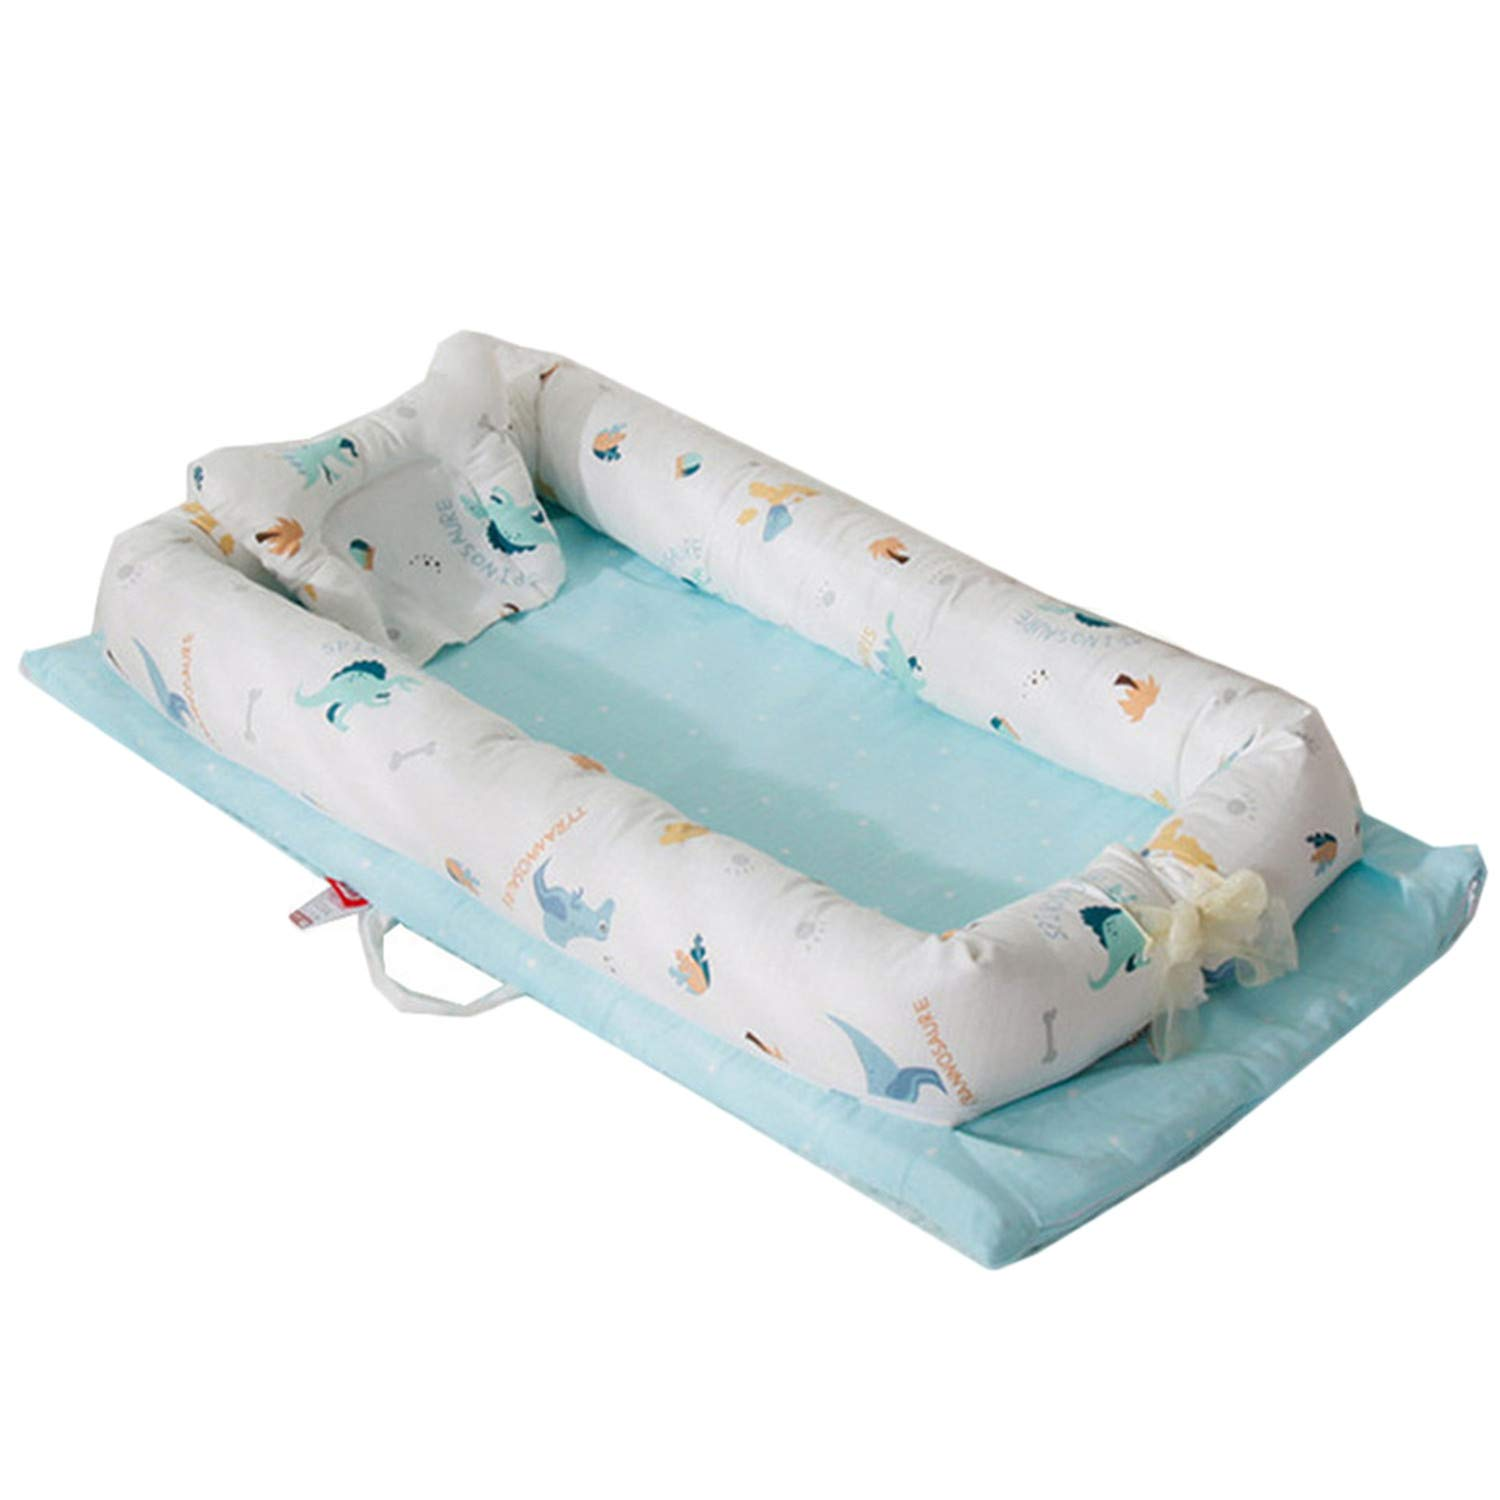 Abreeze Baby Bassinet for Bed -Blue Dinosaur Baby Lounger - Breathable & Hypoallergenic Co-Sleeping Baby Bed - 100% Cotton Portable Crib for Bedroom/Travel 0-24 Months by Abreeze